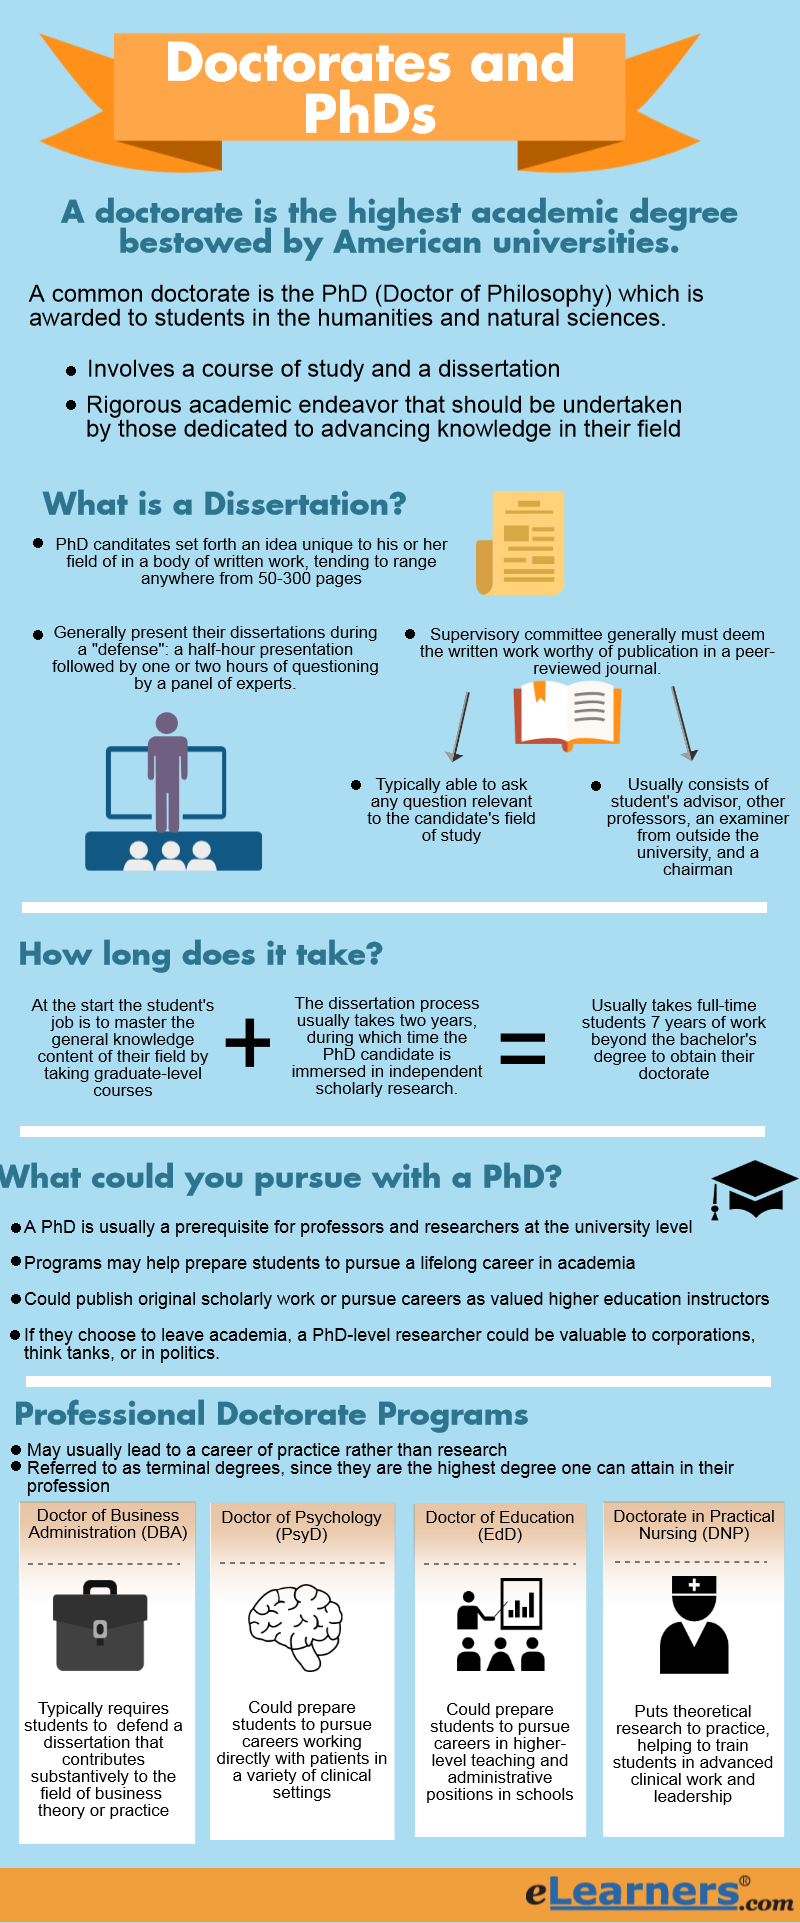 dissertation only phd online General information the doctorate is awarded for completion of an advanced course of study culminating in a doctoral dissertation a bachelor and master degree from an approved college or seminary is required for acceptance into this program.